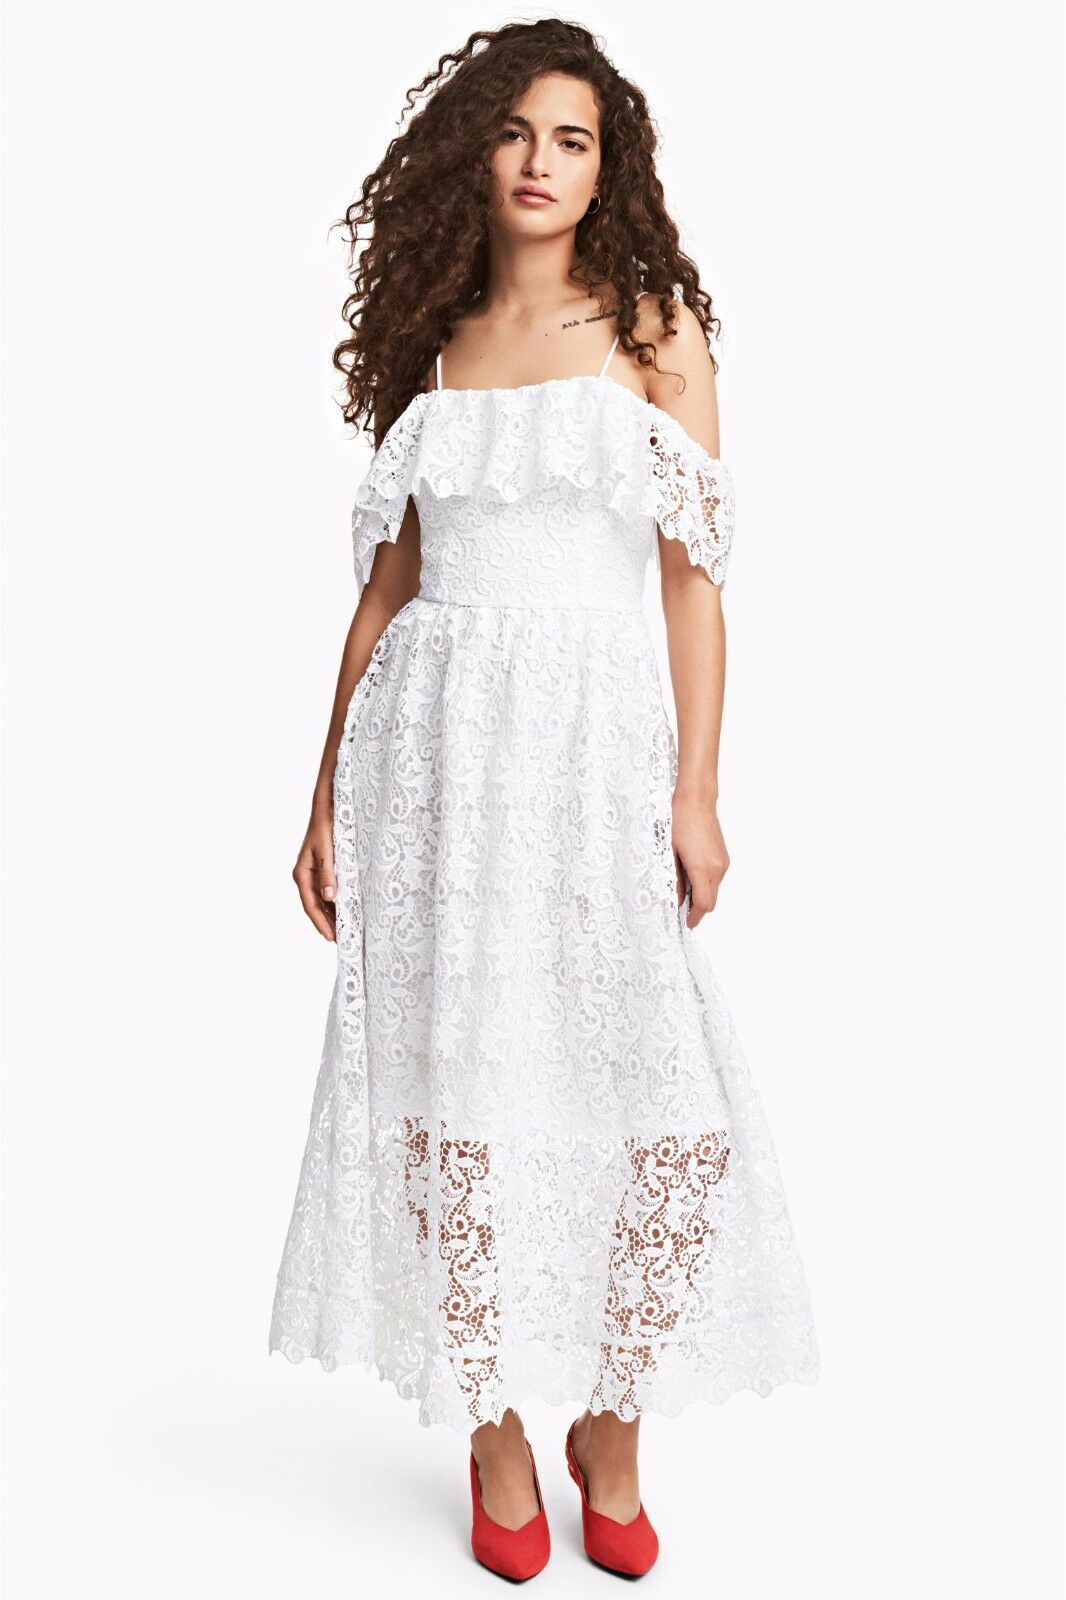 New H&M Off Shoulder White Heavy Lace Dress Bloggers